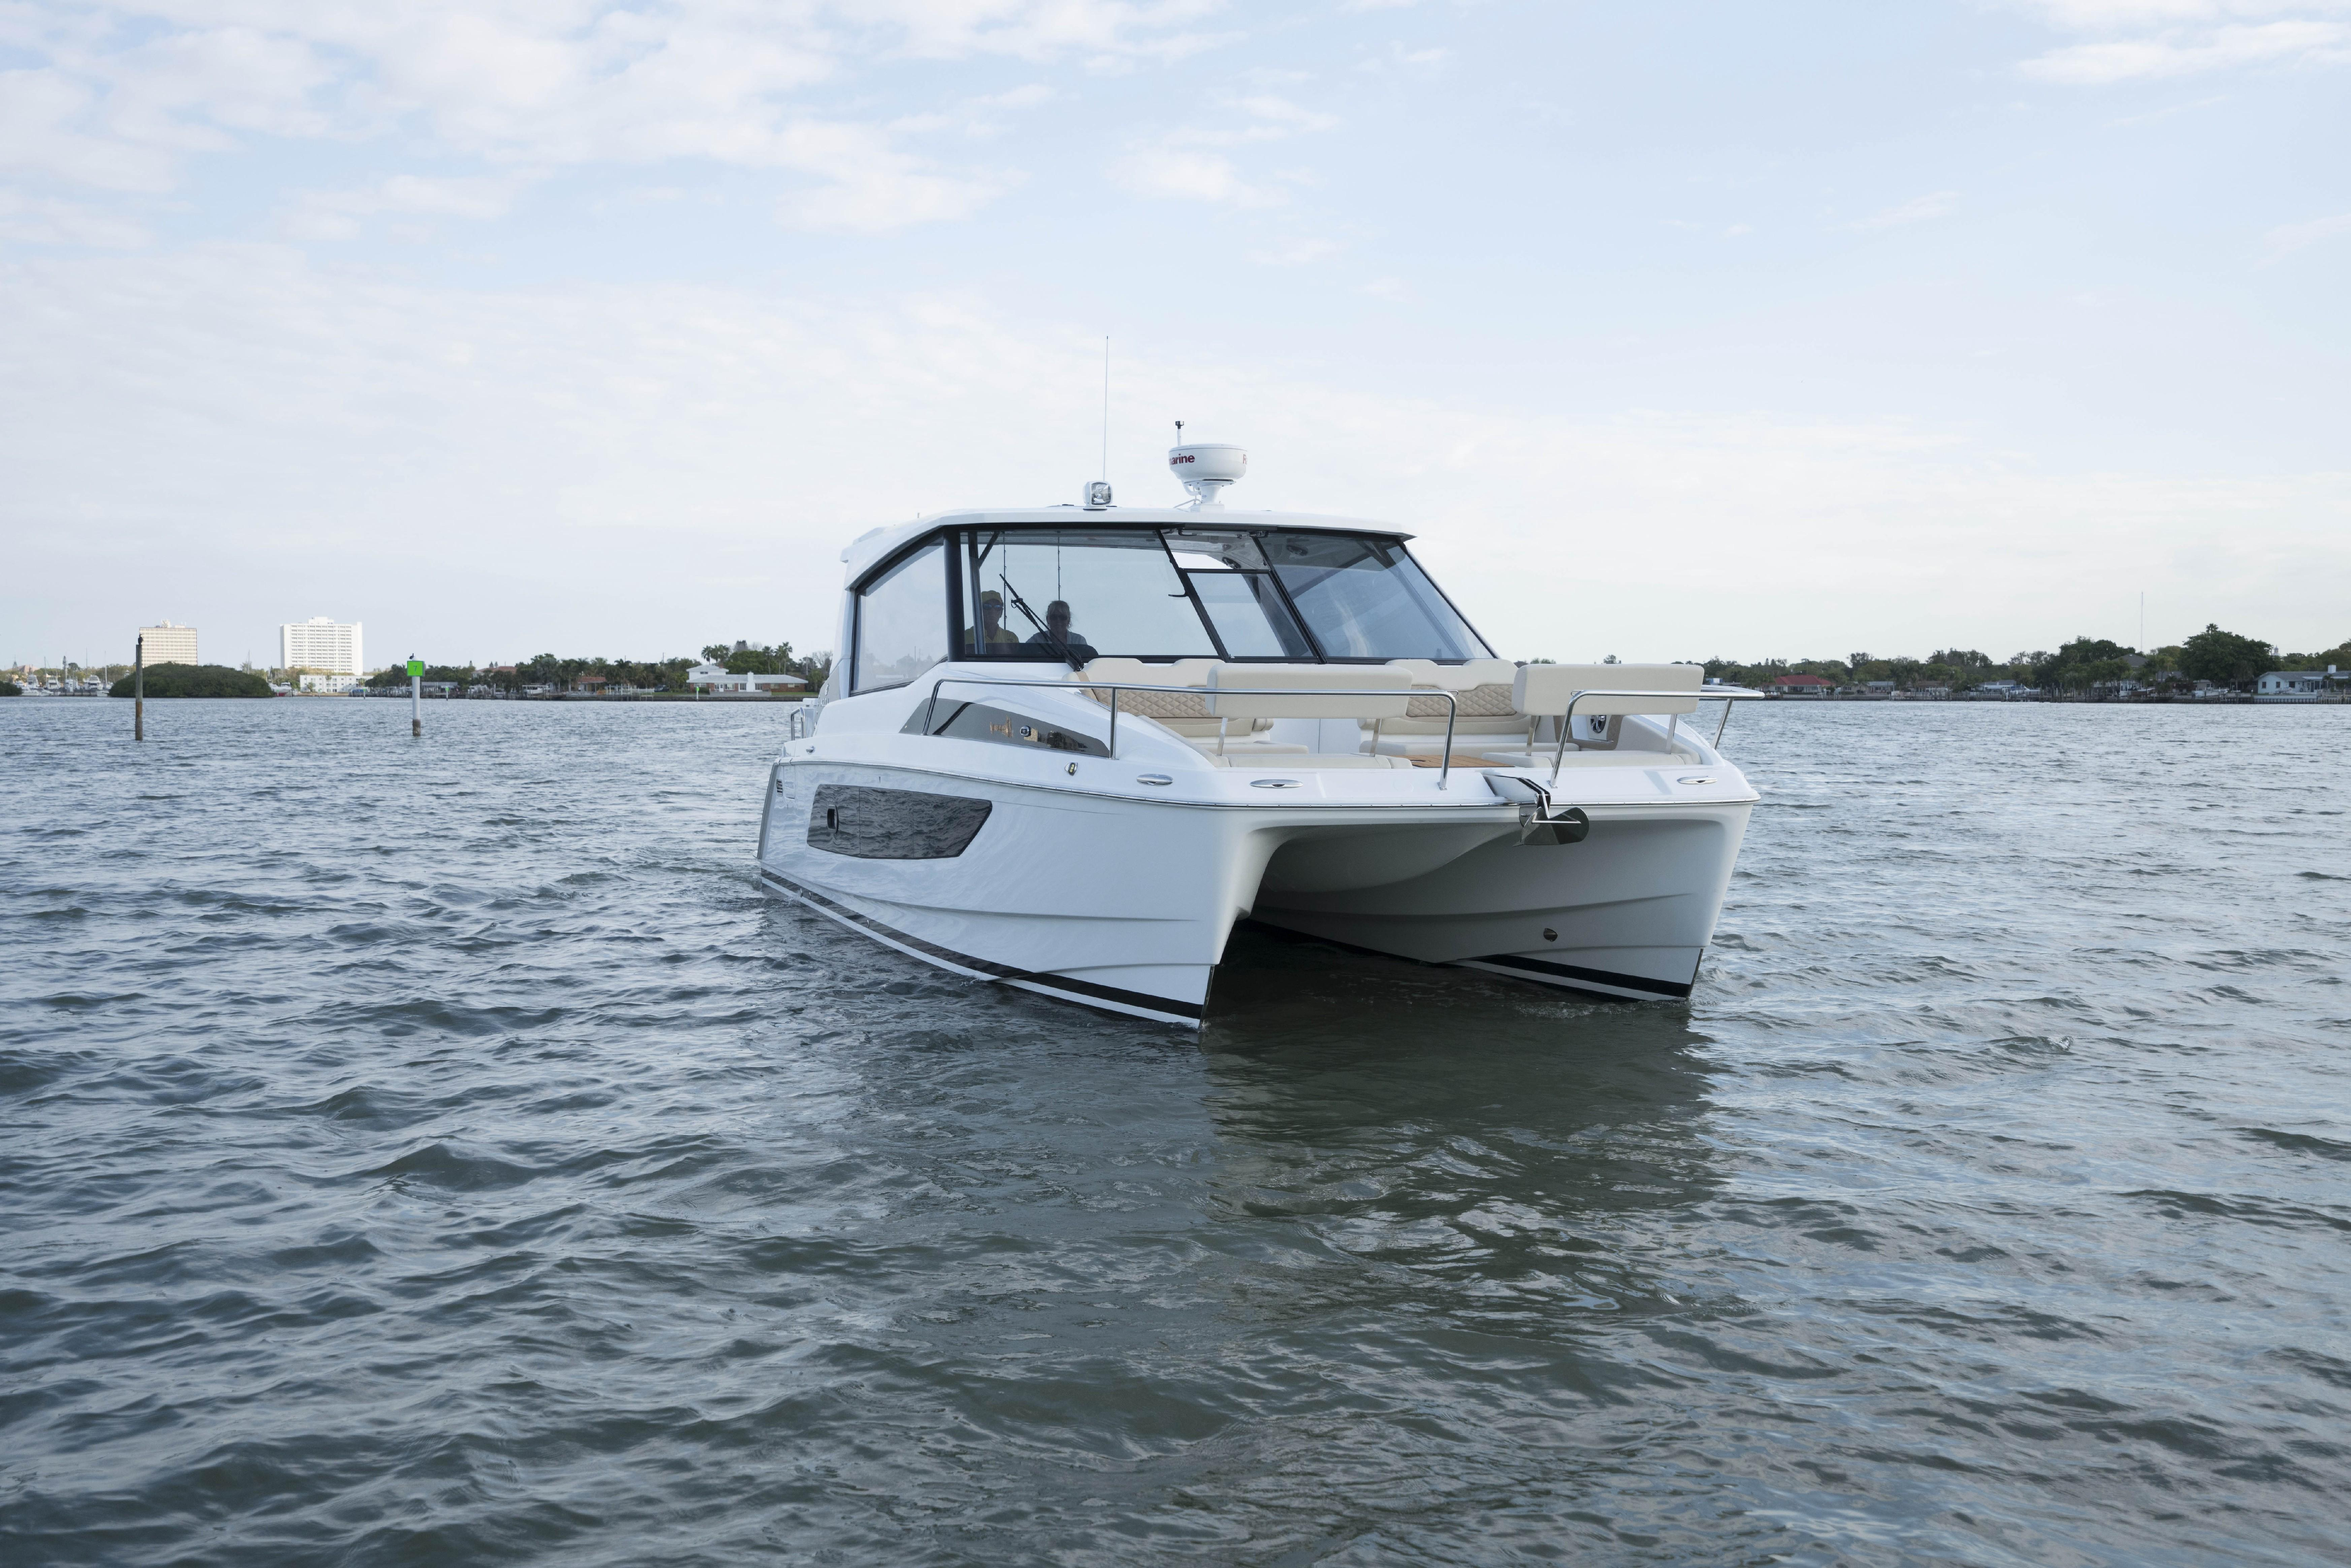 2020 Aquila 36 Fishing and Diving